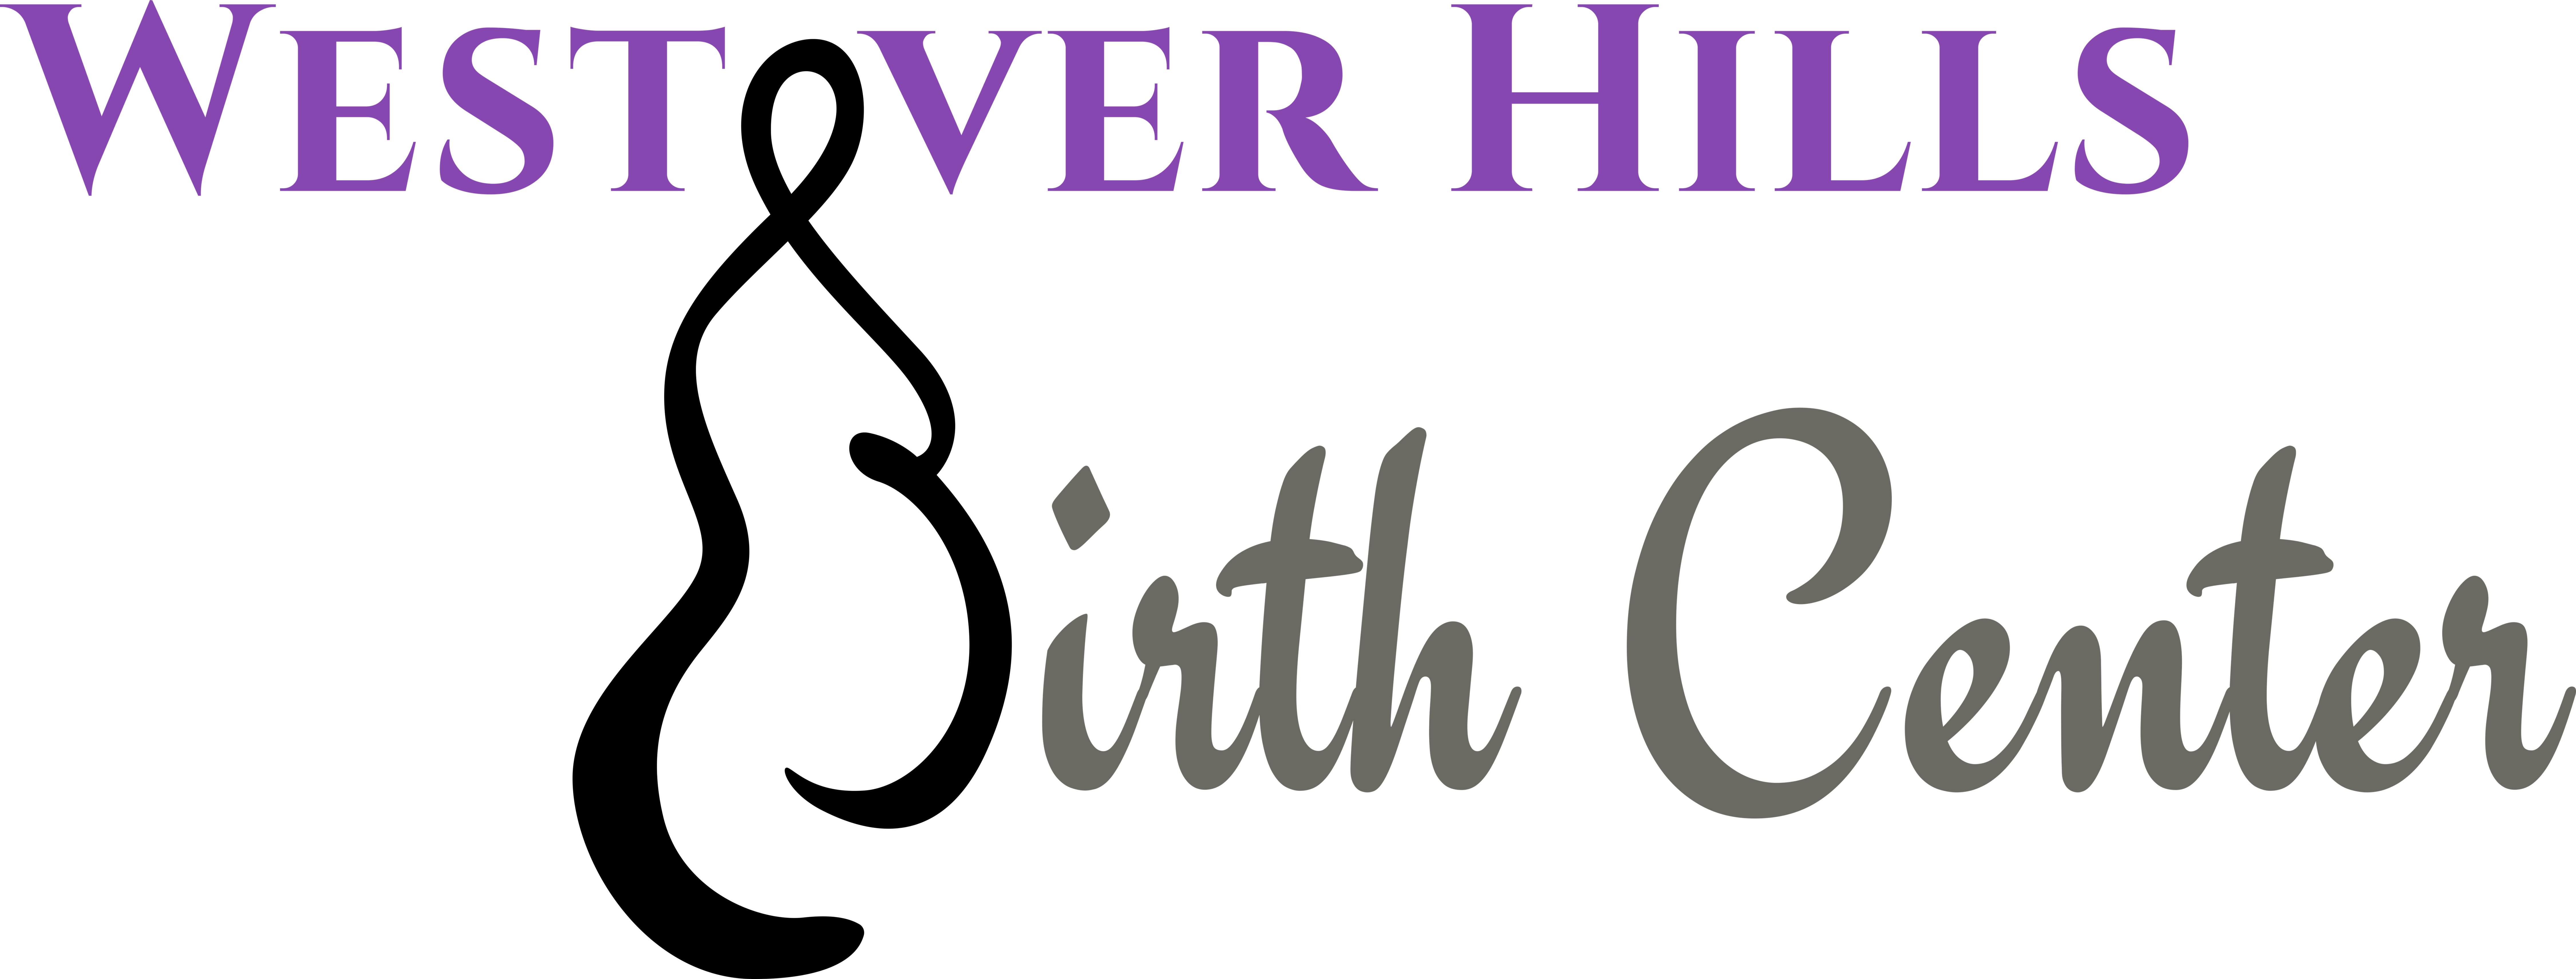 Westover Hills Birth Center